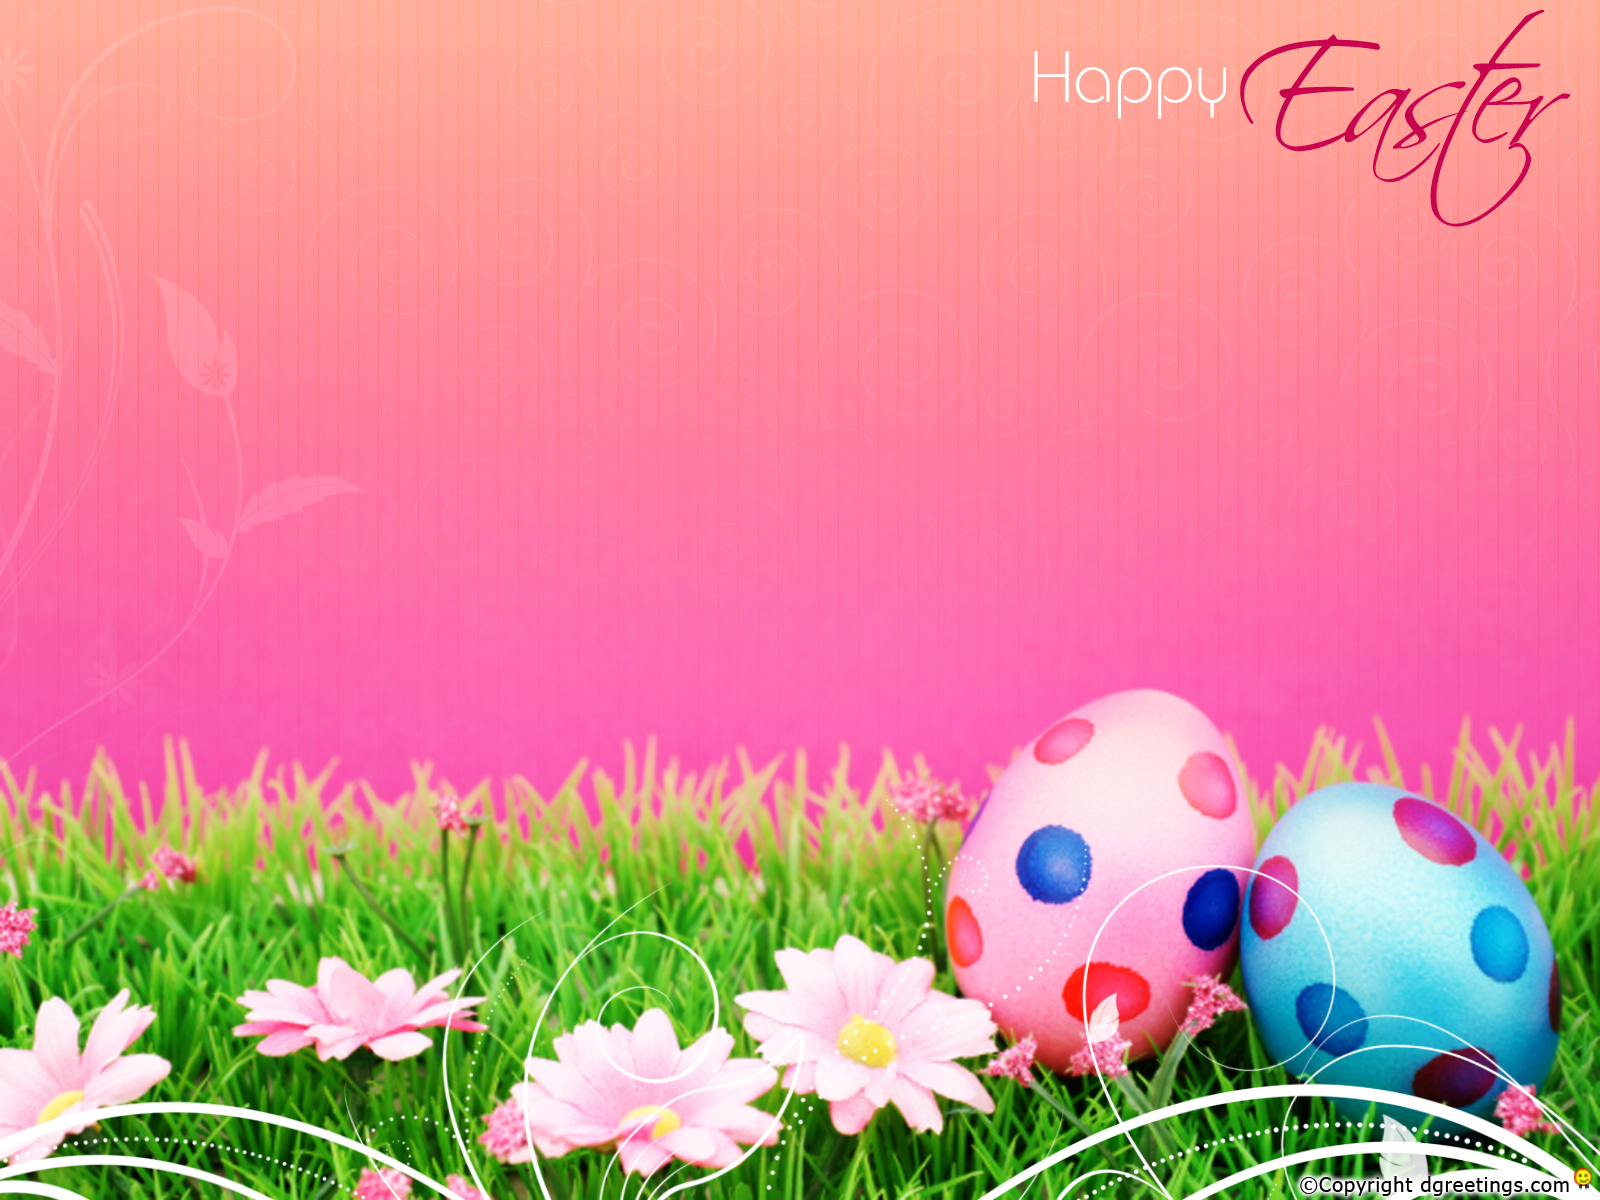 Pics Photos   Wallpaper Backgrounds Easter Background 06 1600x1200